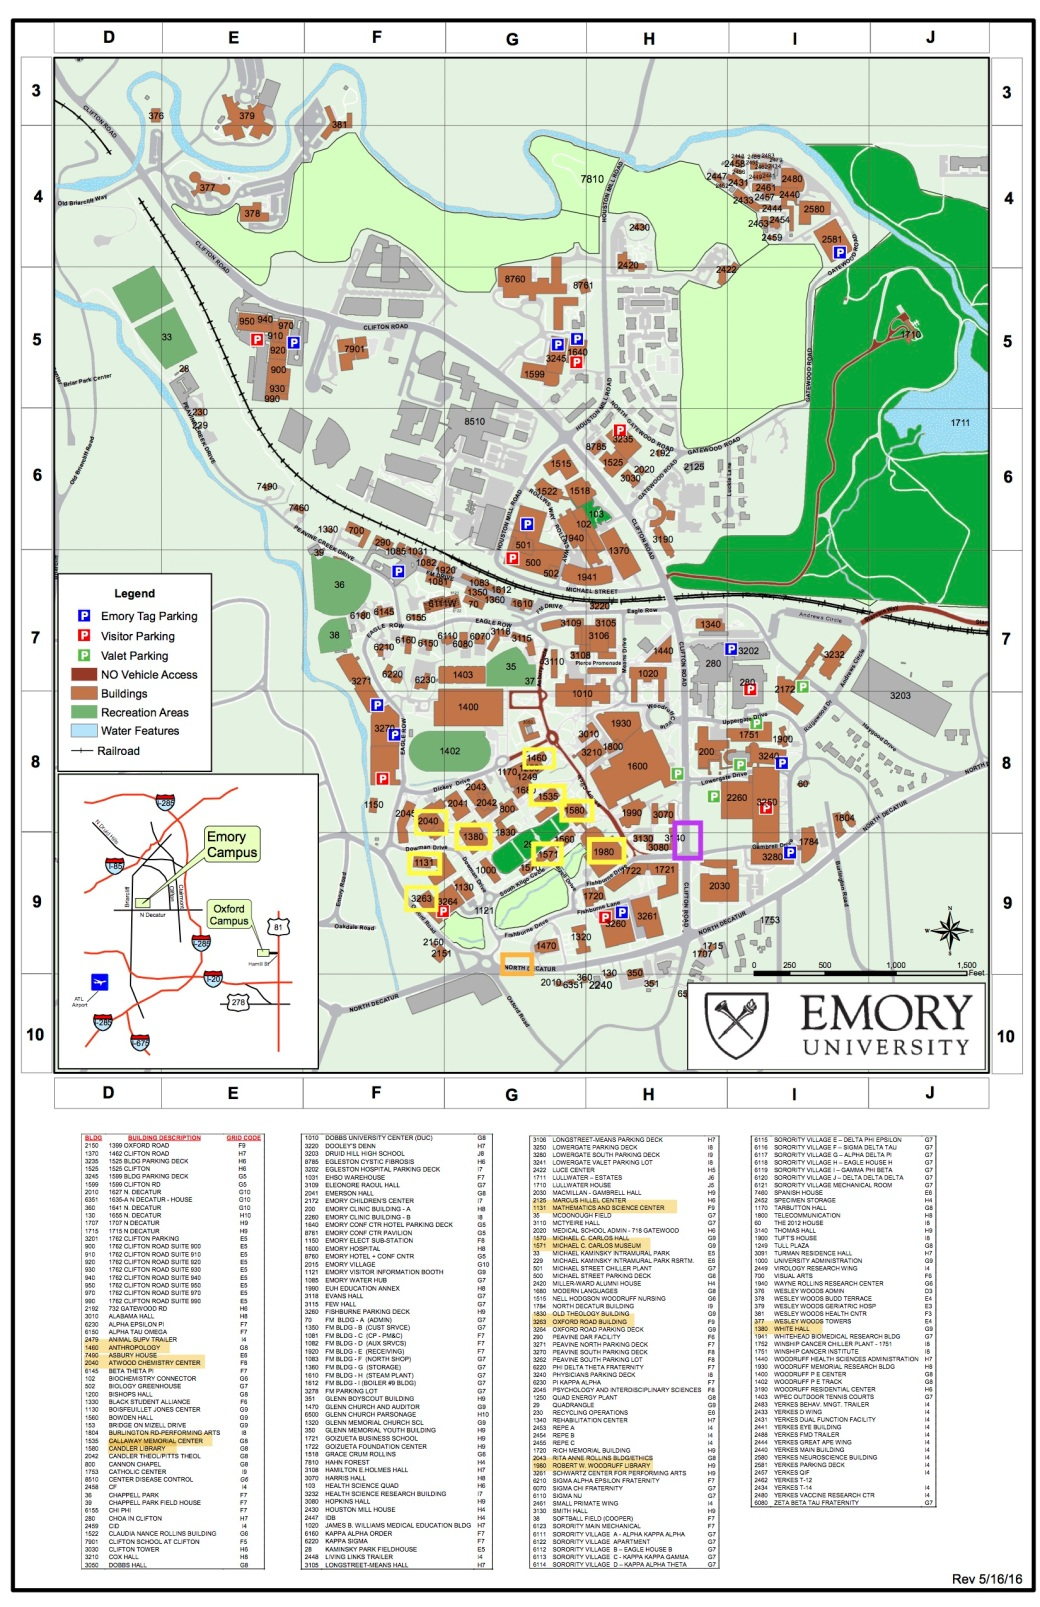 Emory Map | New Materialisms and Economies of Excess